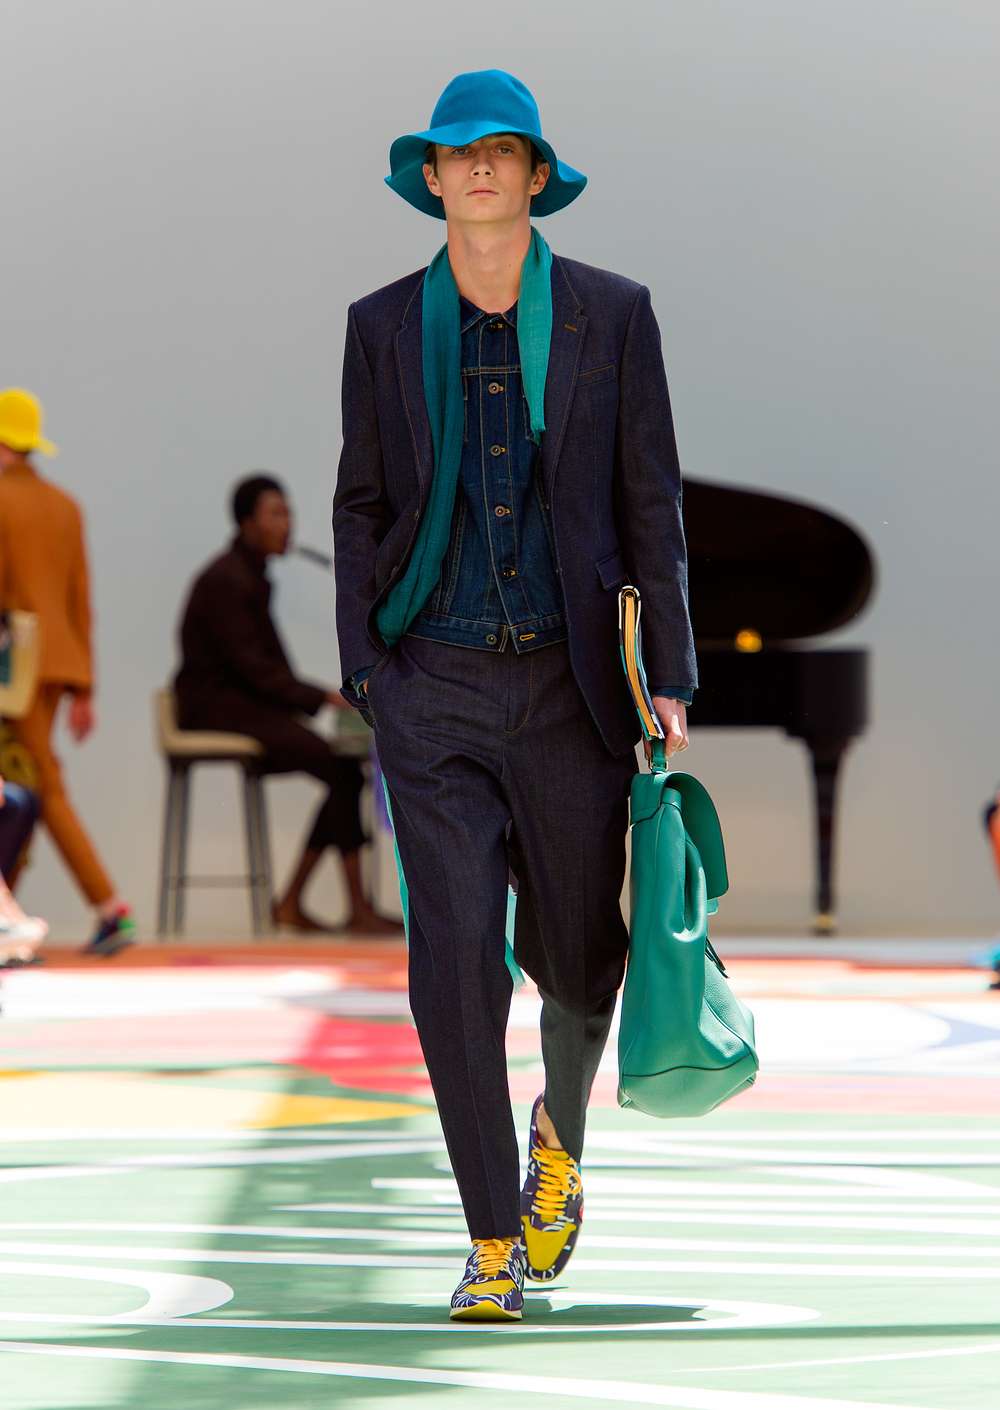 Burberry Prorsum Menswear Spring Summer 2015 Collection - Look 33.jpg